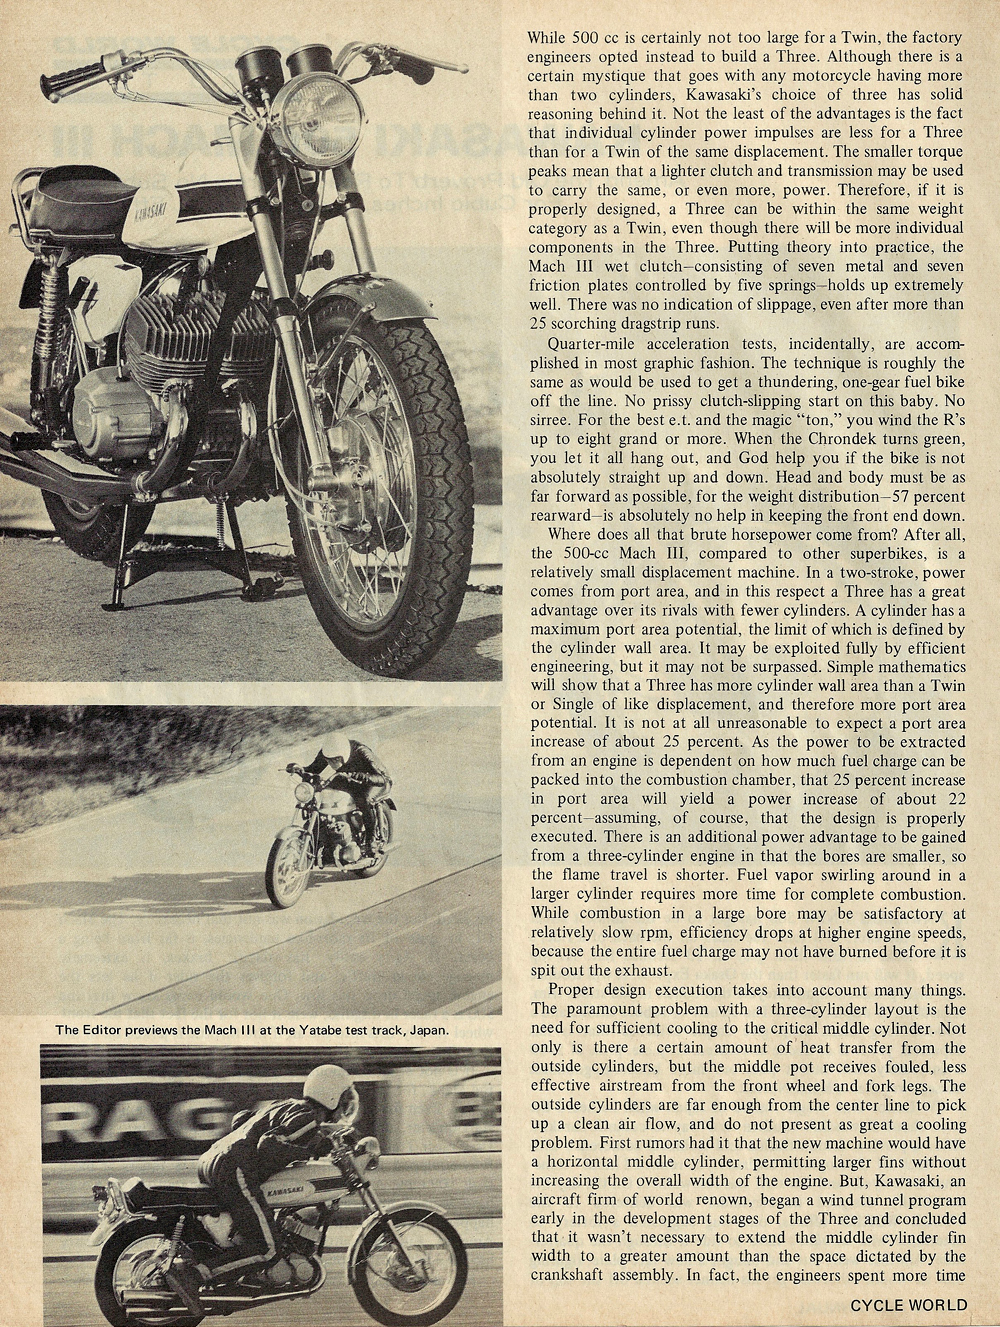 1969 Kawasaki 500 Mach 3 road test 2.jpg